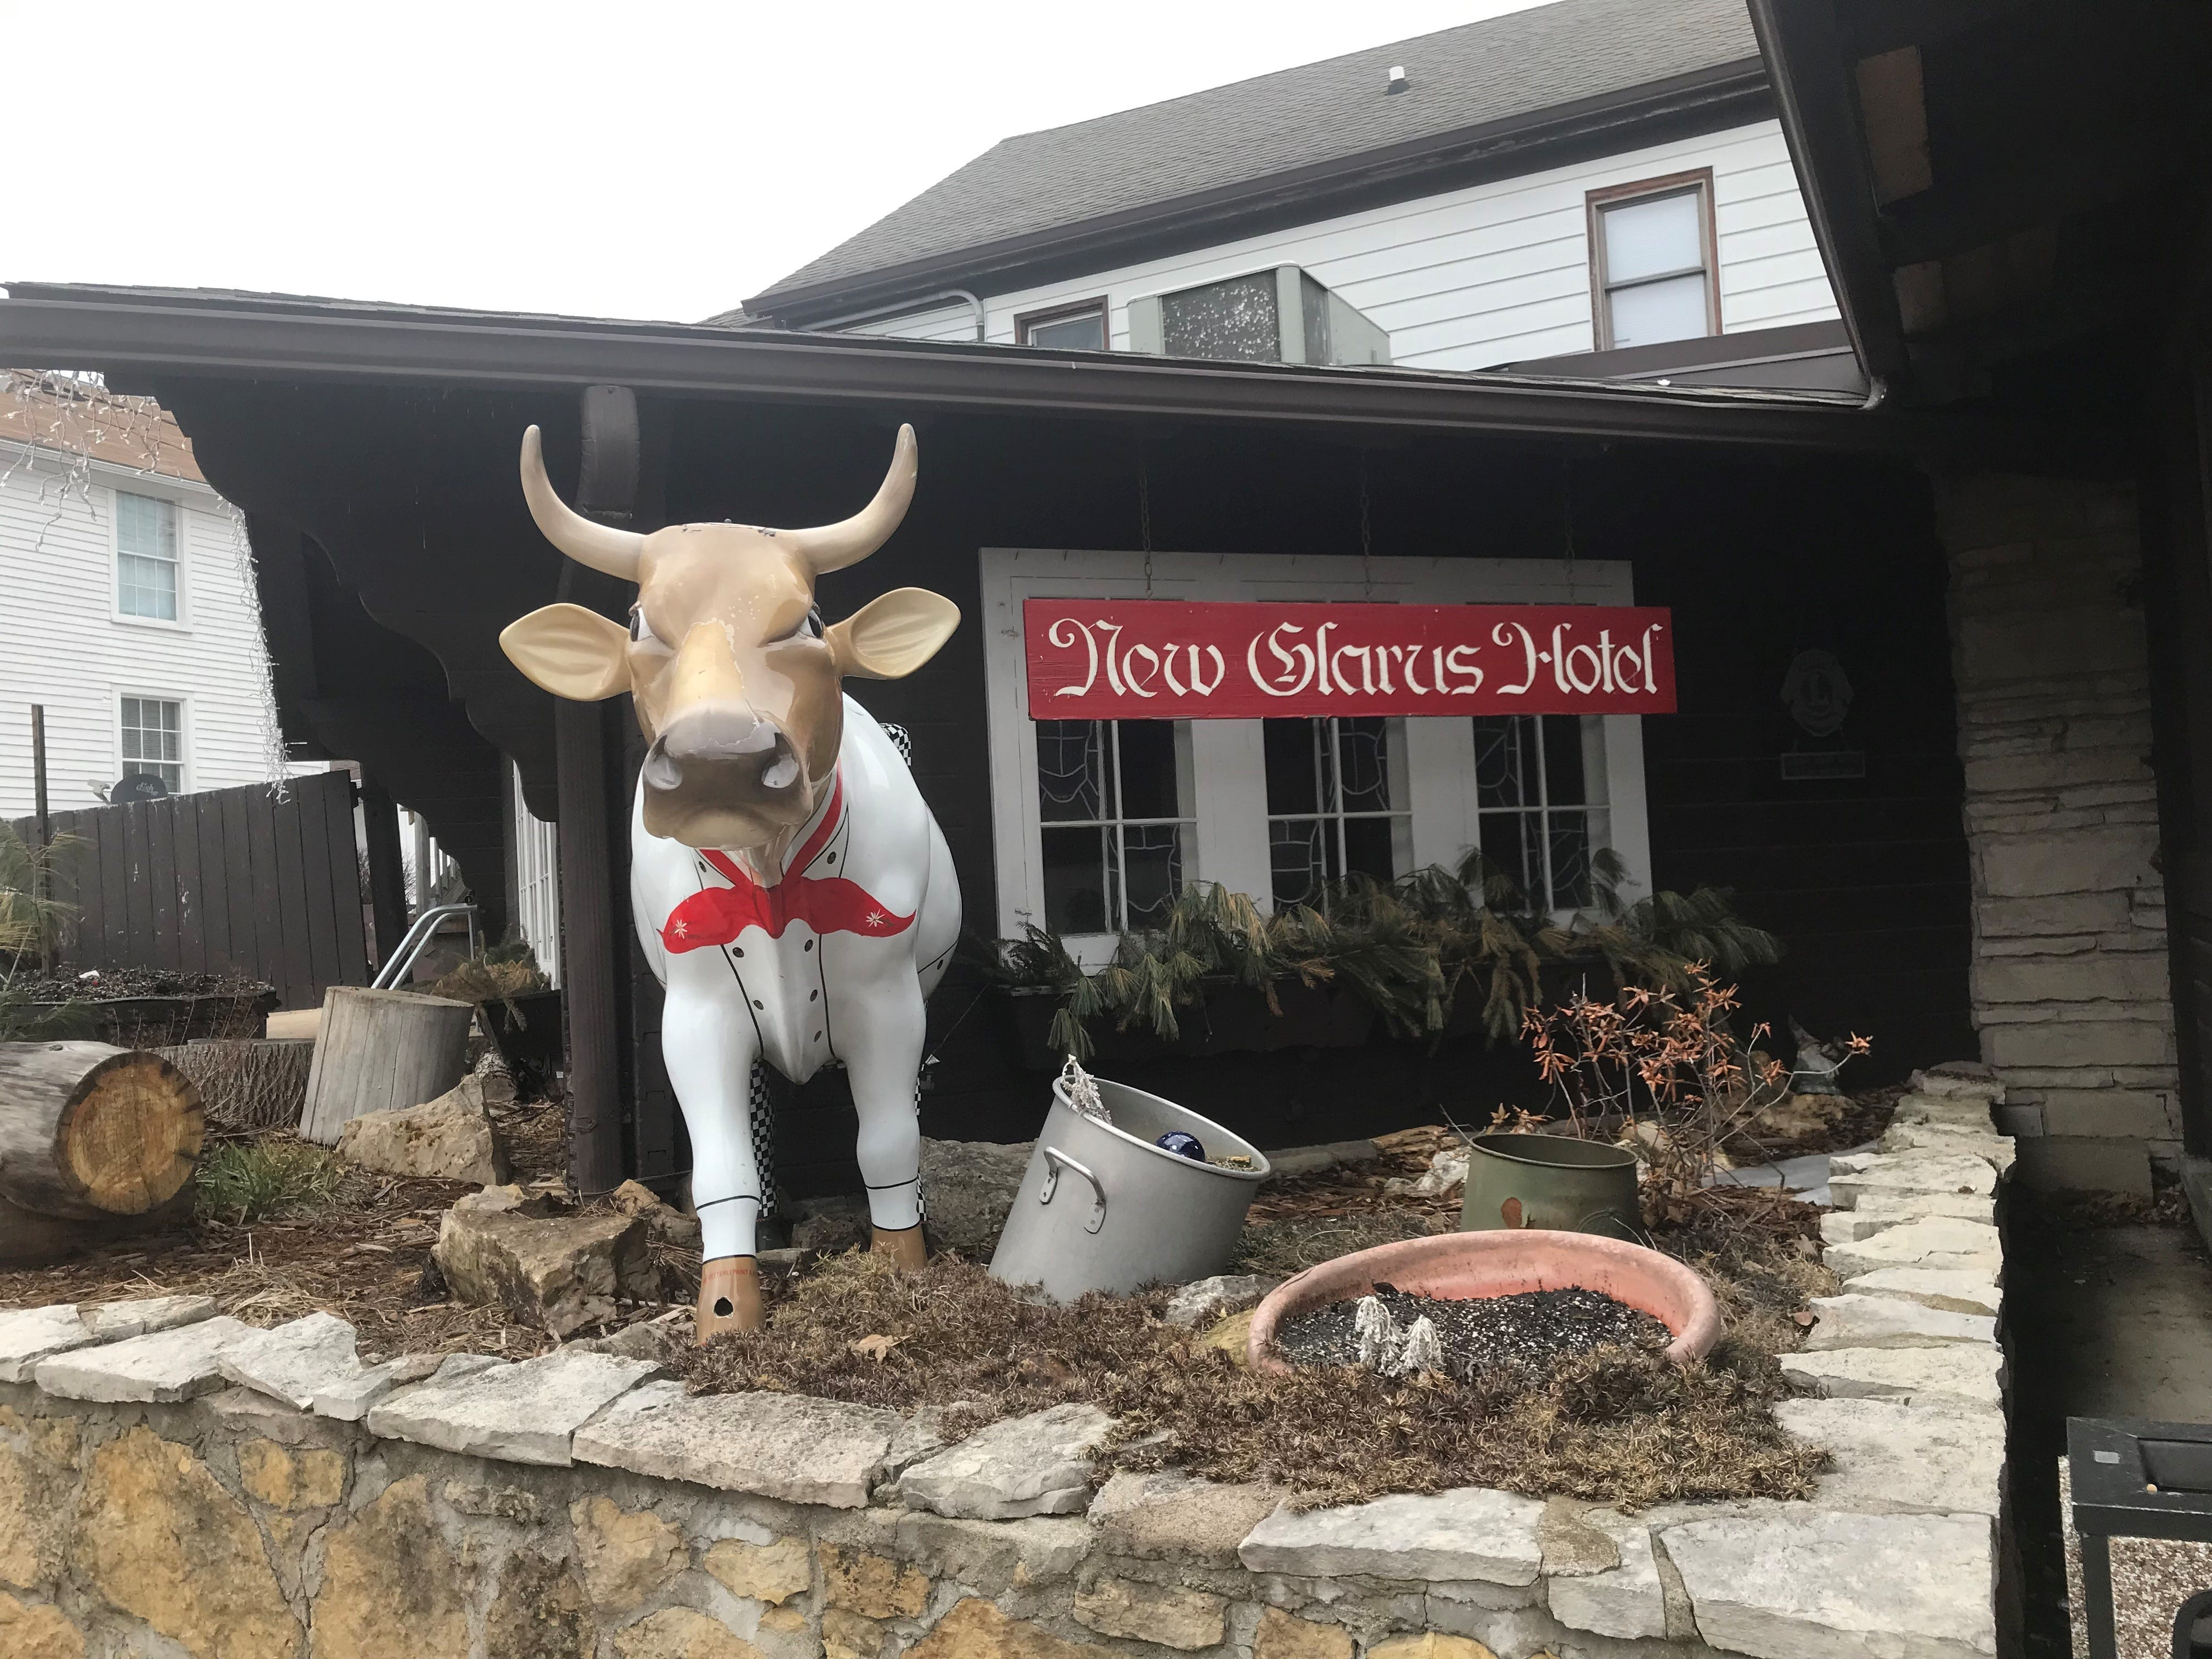 One of New Glarus' many Cows on Parade welcomes guests to the New Glarus Hotel.